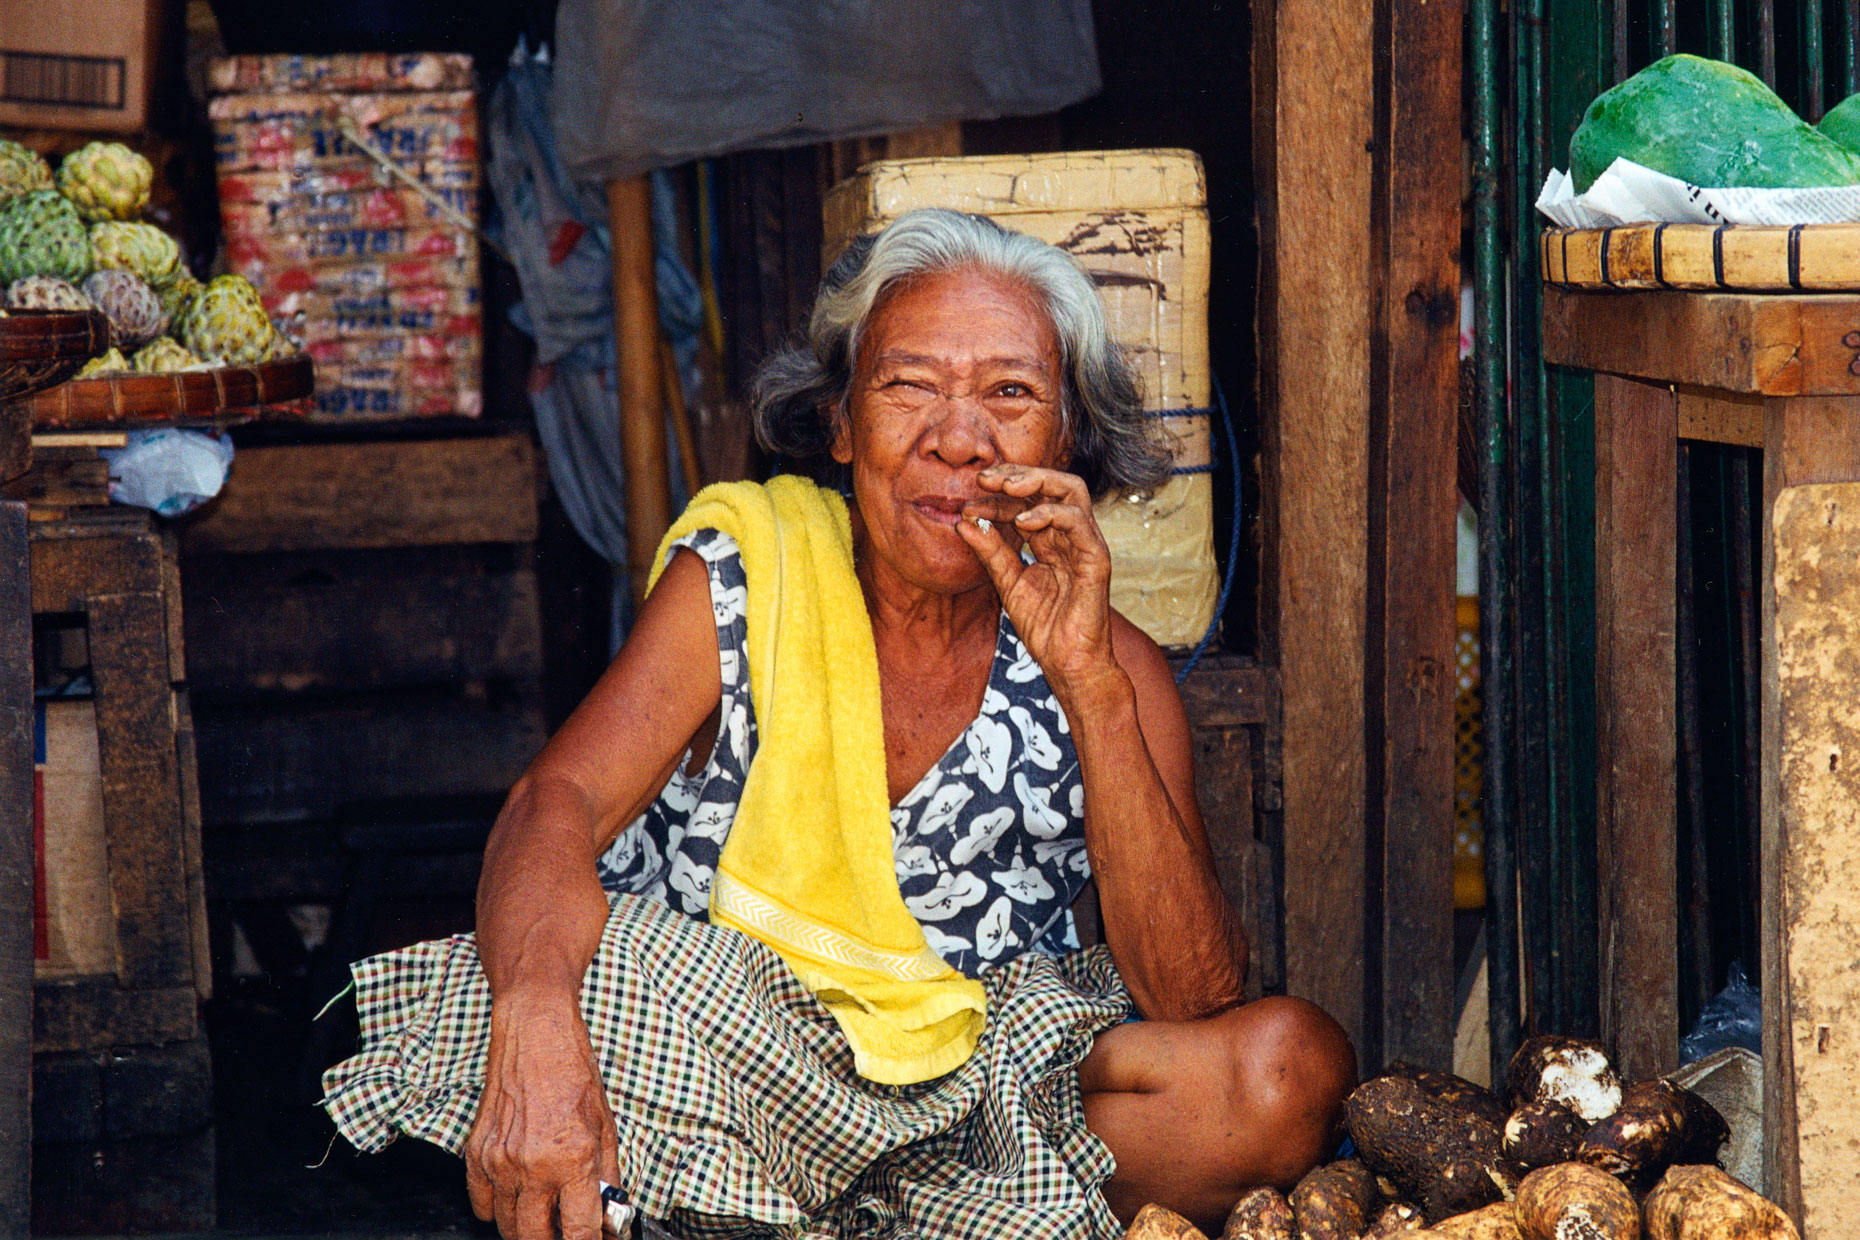 Smoking-Woman-Cebu-City-Philippines-Travel-Photography-Caryn-B-Davis